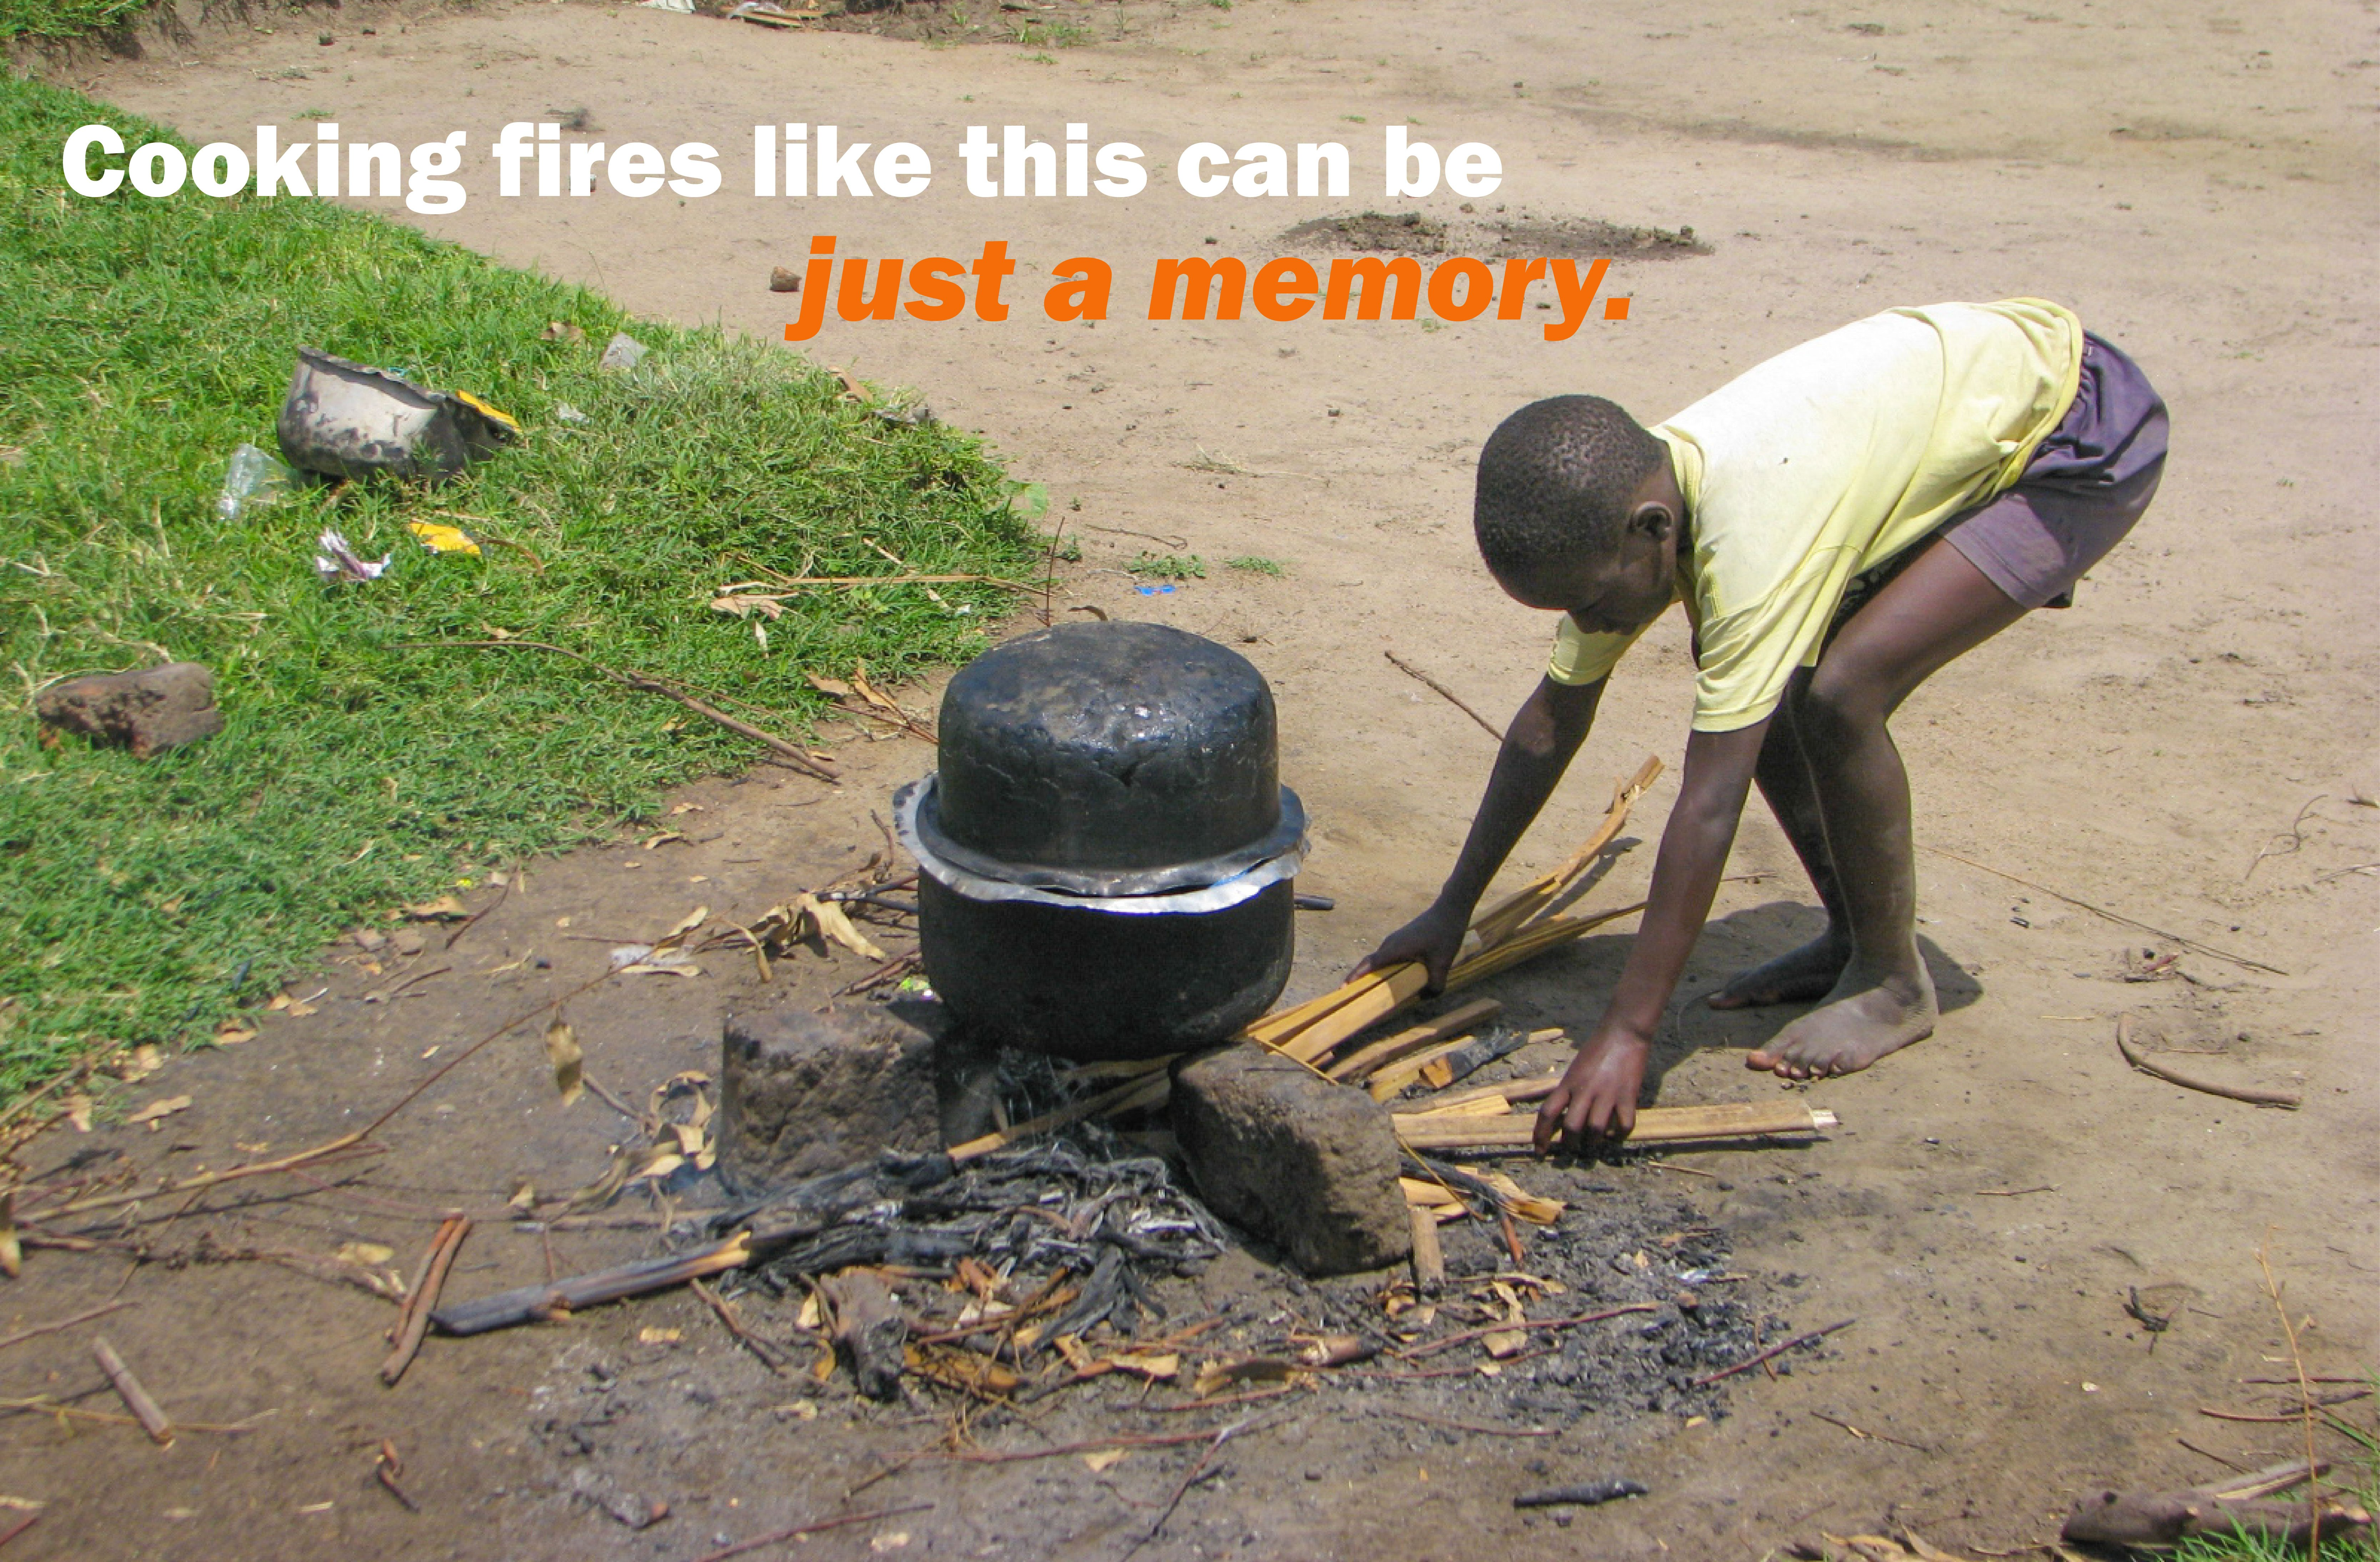 You can help make cooking fires a memory.